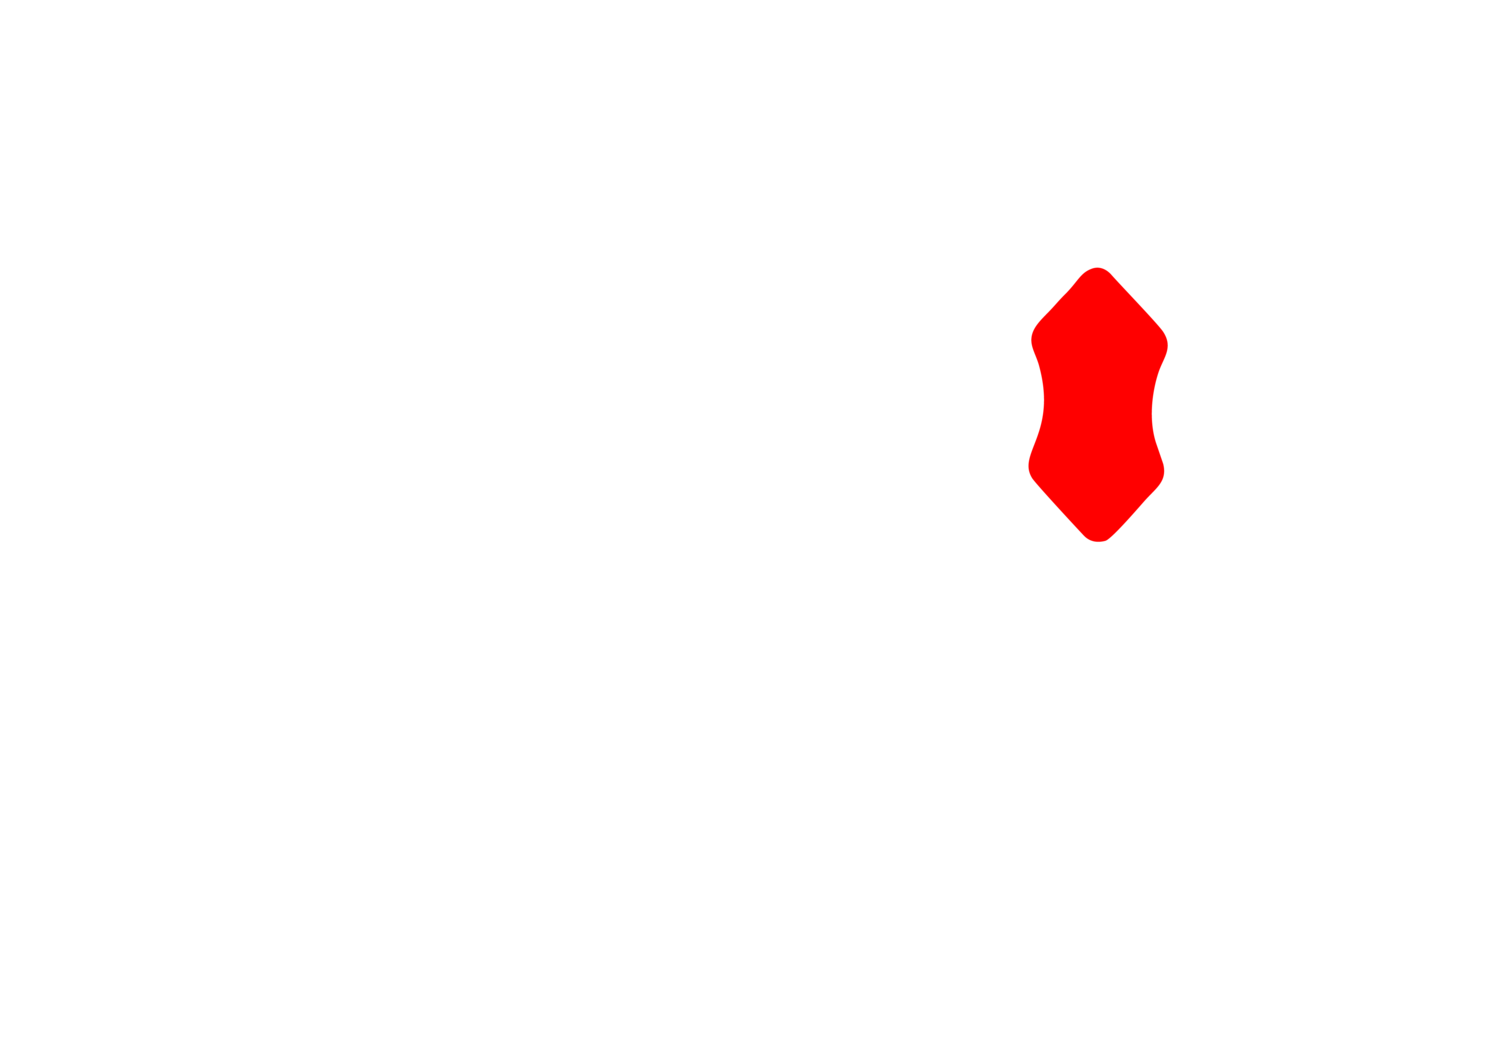 Global InStore Communication